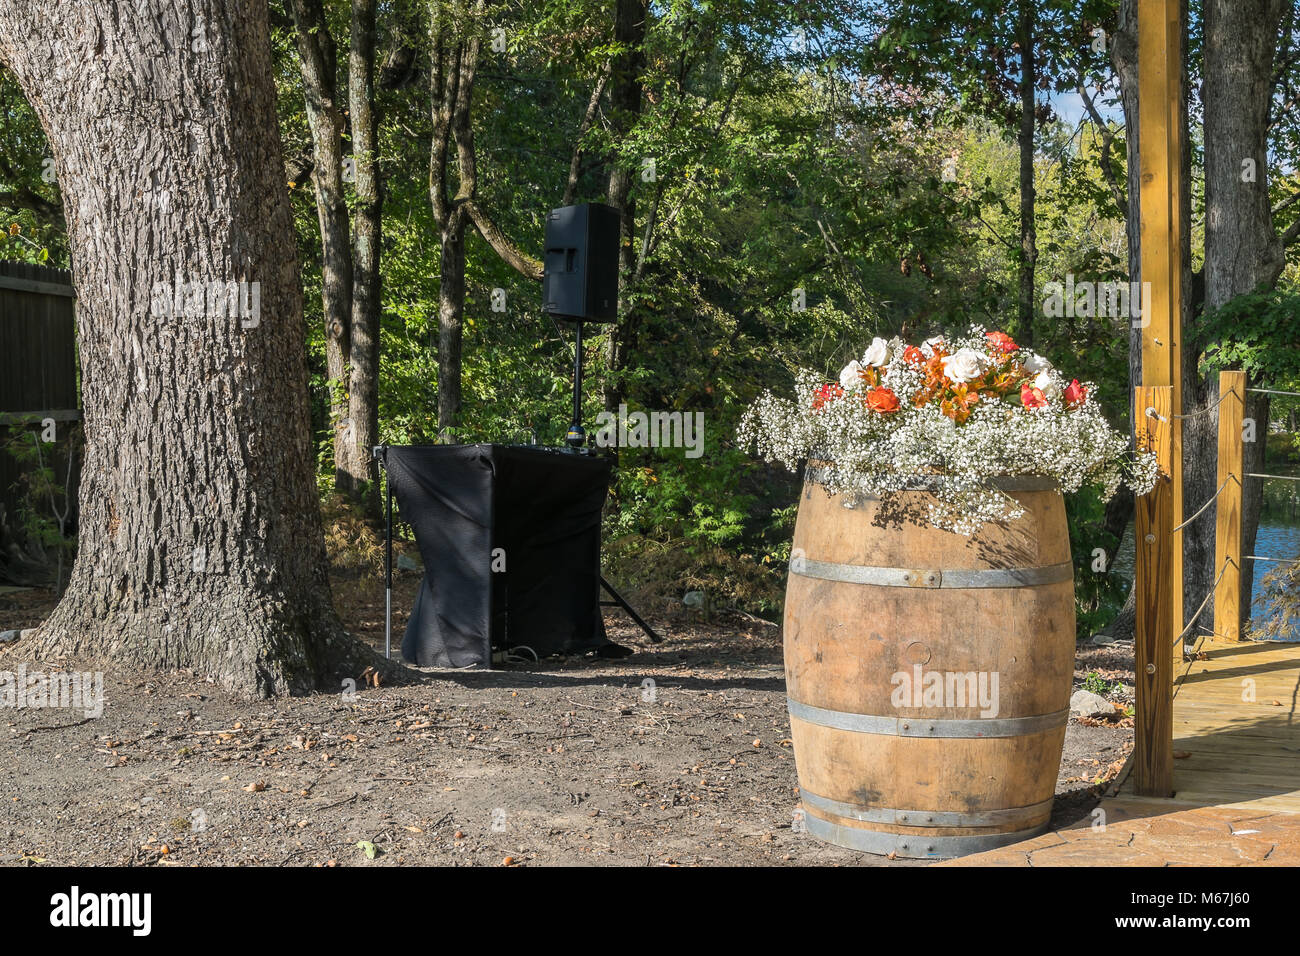 Decorations for the wedding day. Stock Photo